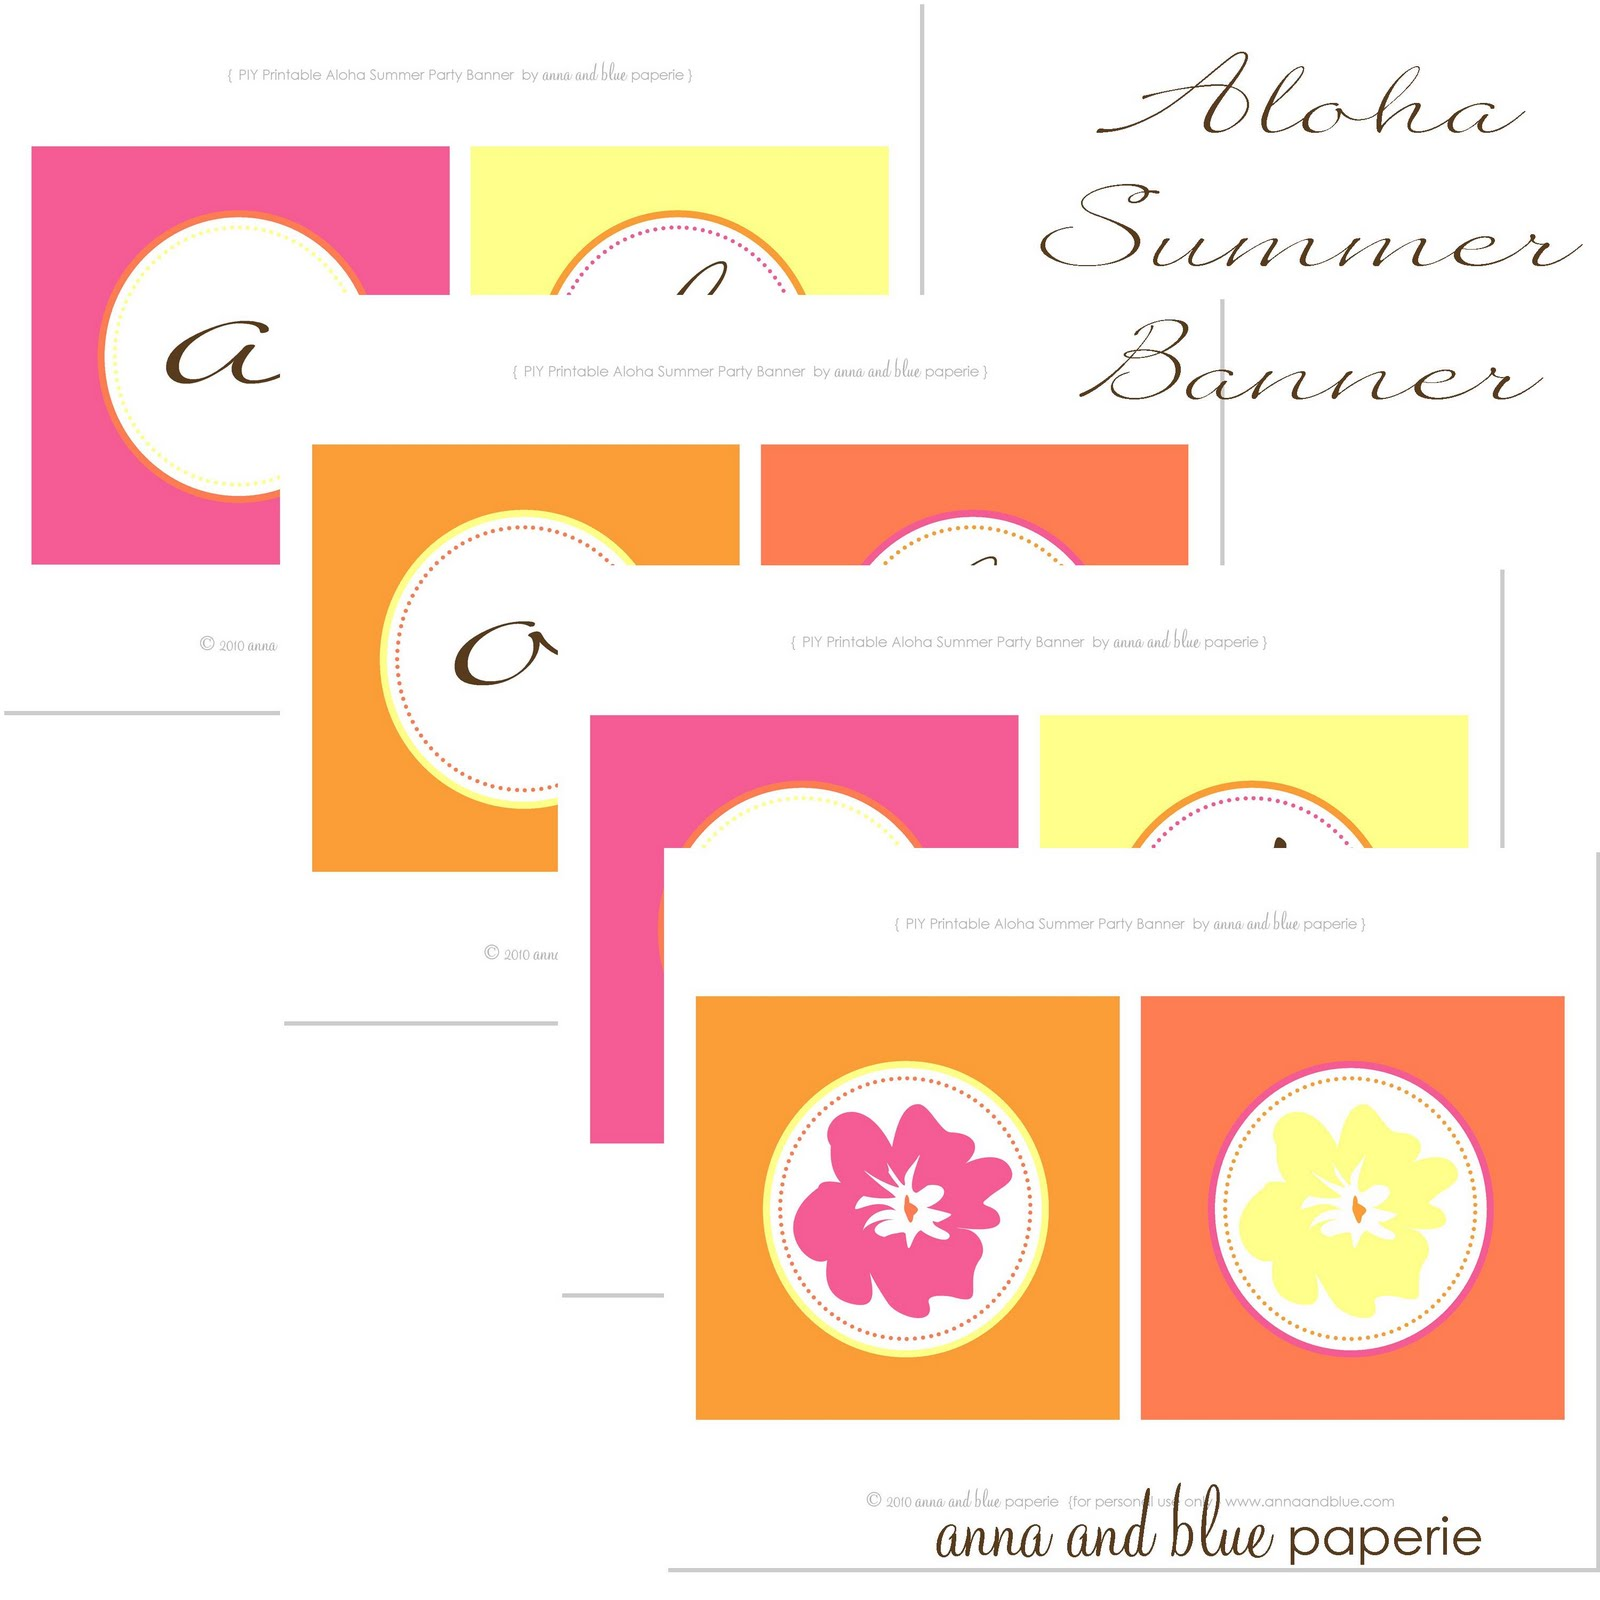 anna and blue paperie aloha summer party details free printable. Black Bedroom Furniture Sets. Home Design Ideas